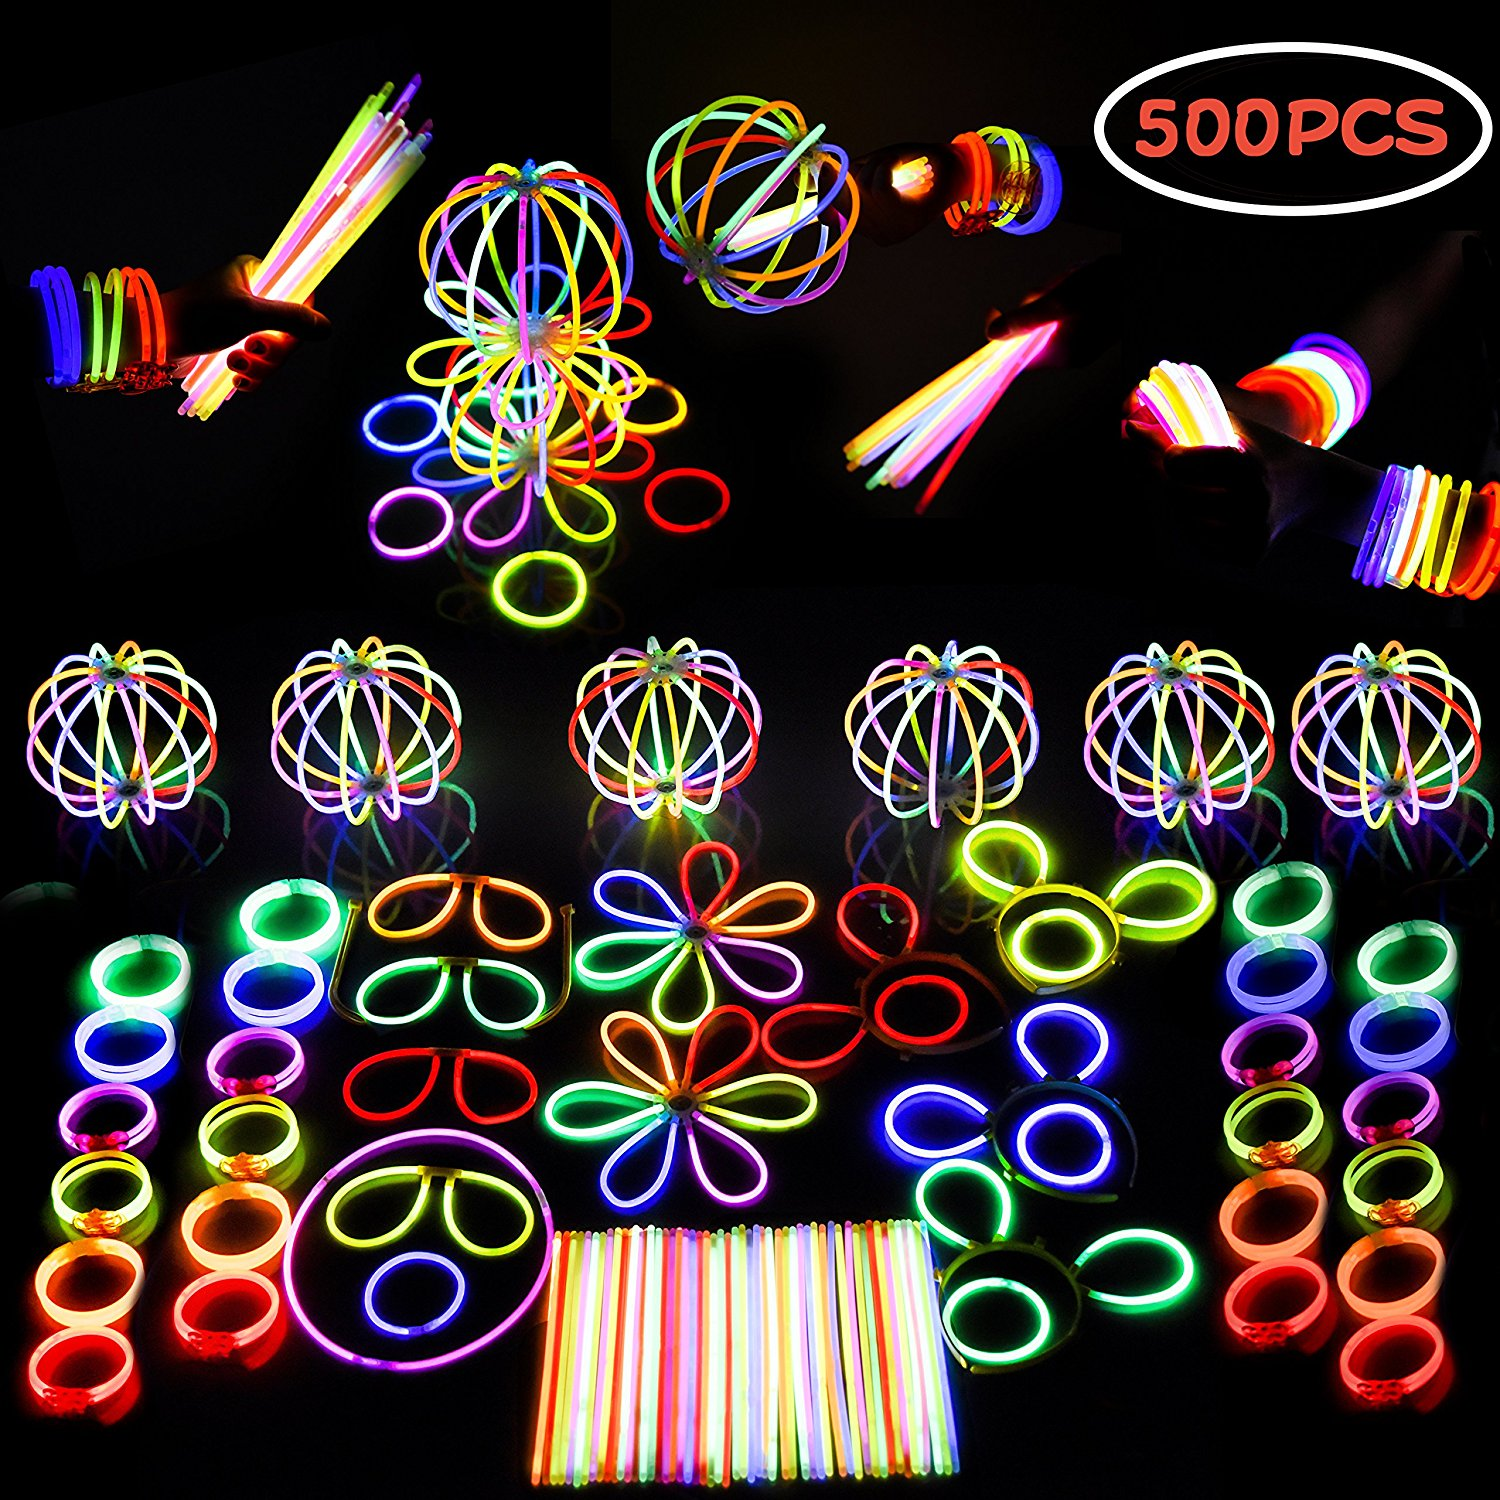 Glow Stick Party Favors Bulk LED Light Up Birthday Party Supplies Includes Glowsticks, Bracelets, Glasses, Butterfly Hair Clip Accessories, Hair Clasp Illuminate Party Kit F-120